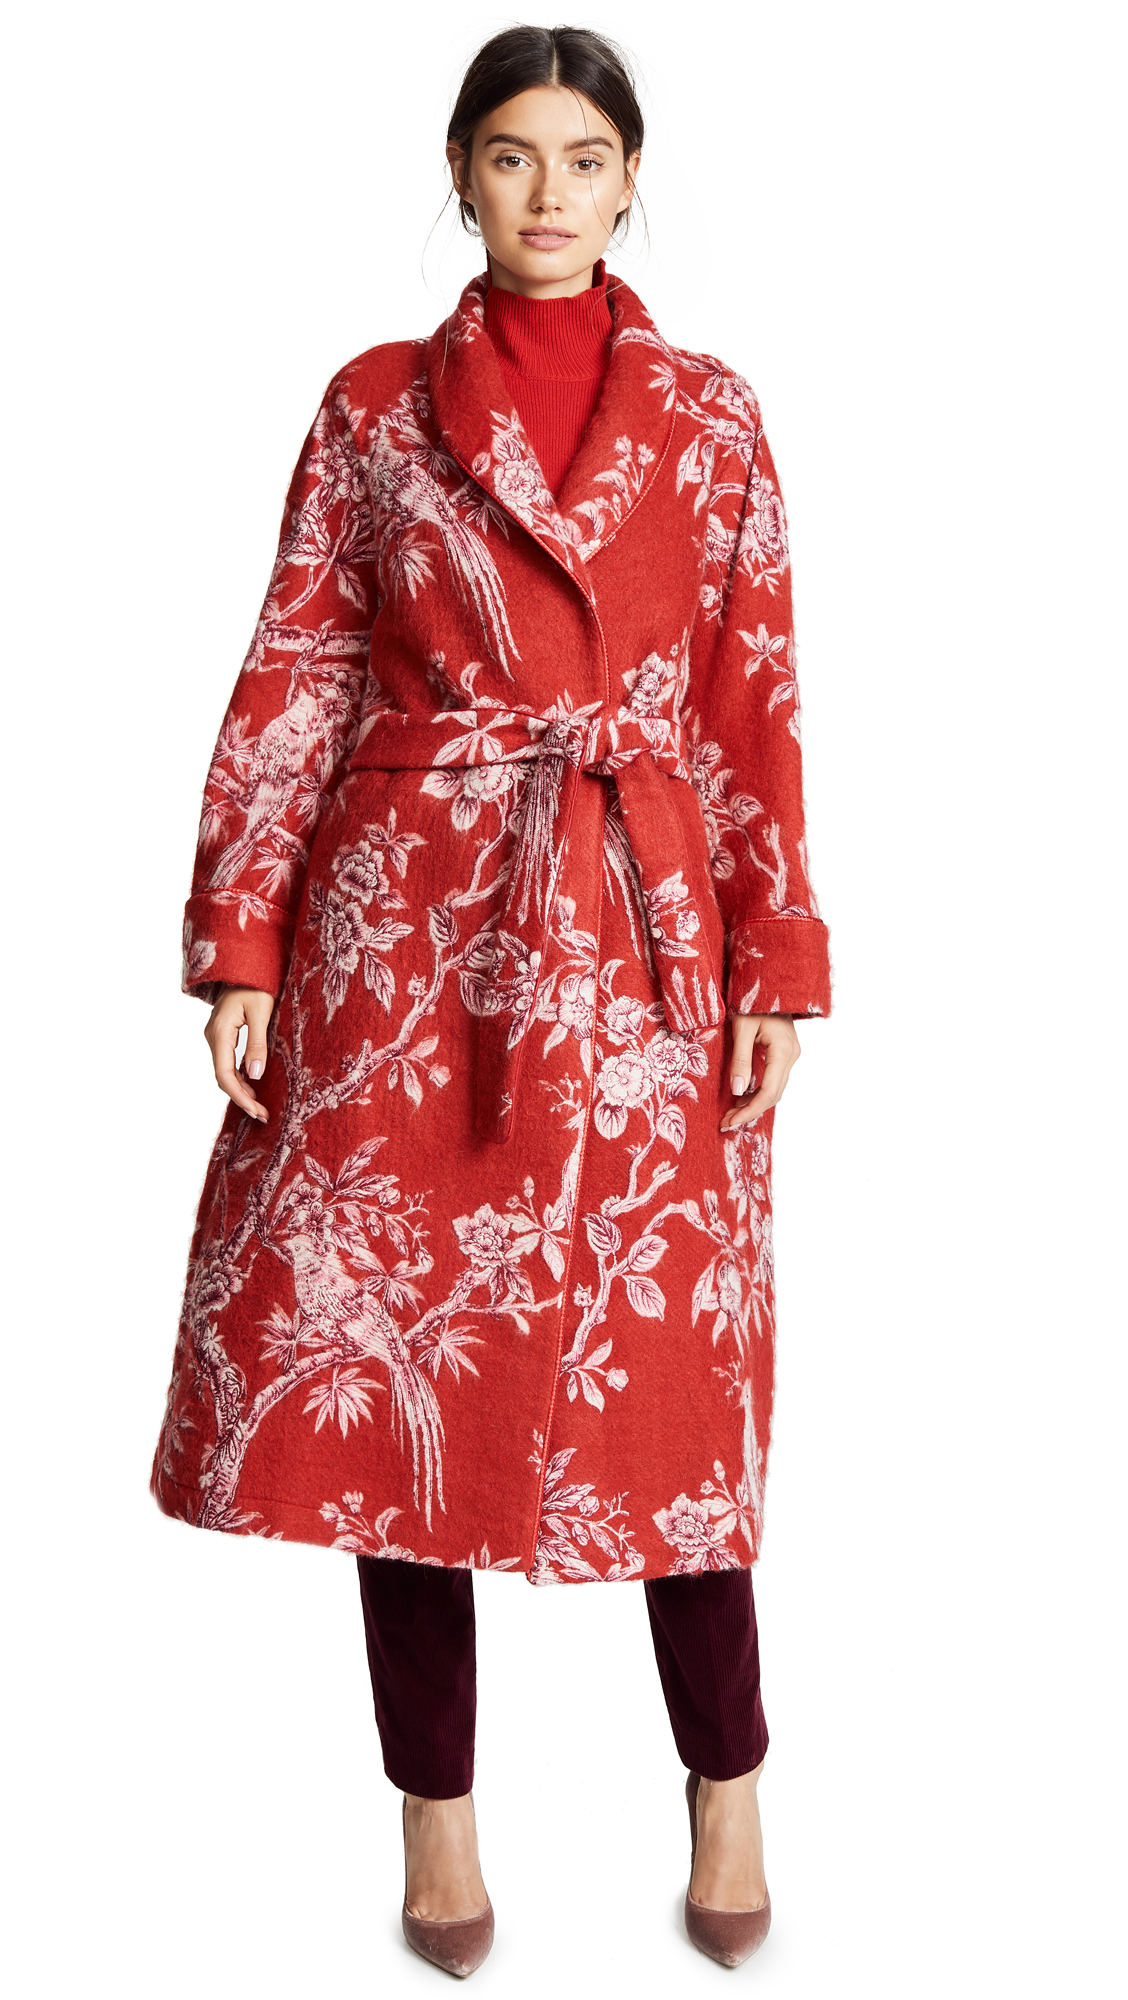 F.R.S For Restless Sleepers Tie Waist Robe